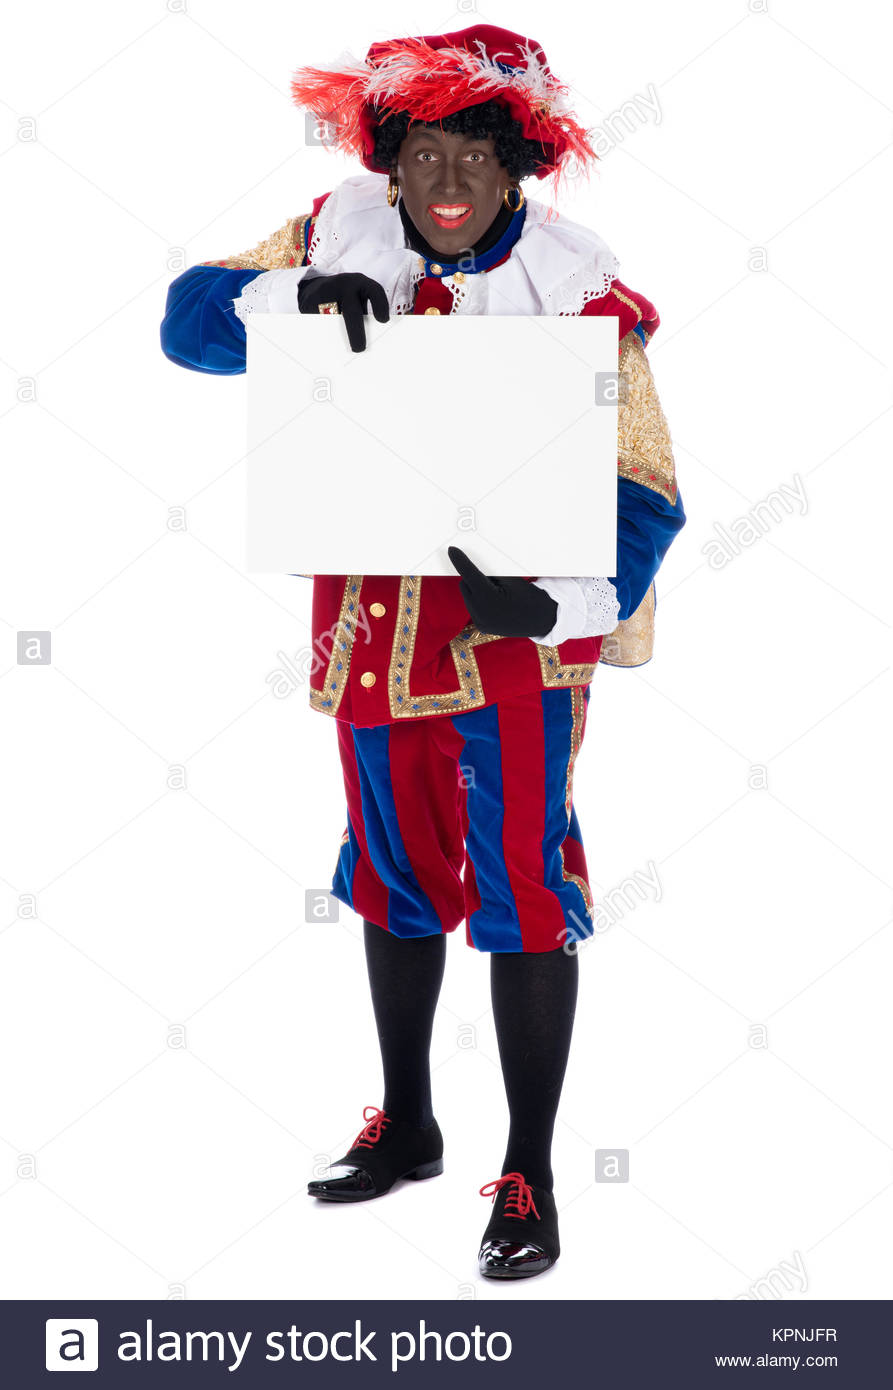 Zwarte Piet with whiteboard - Stock Image